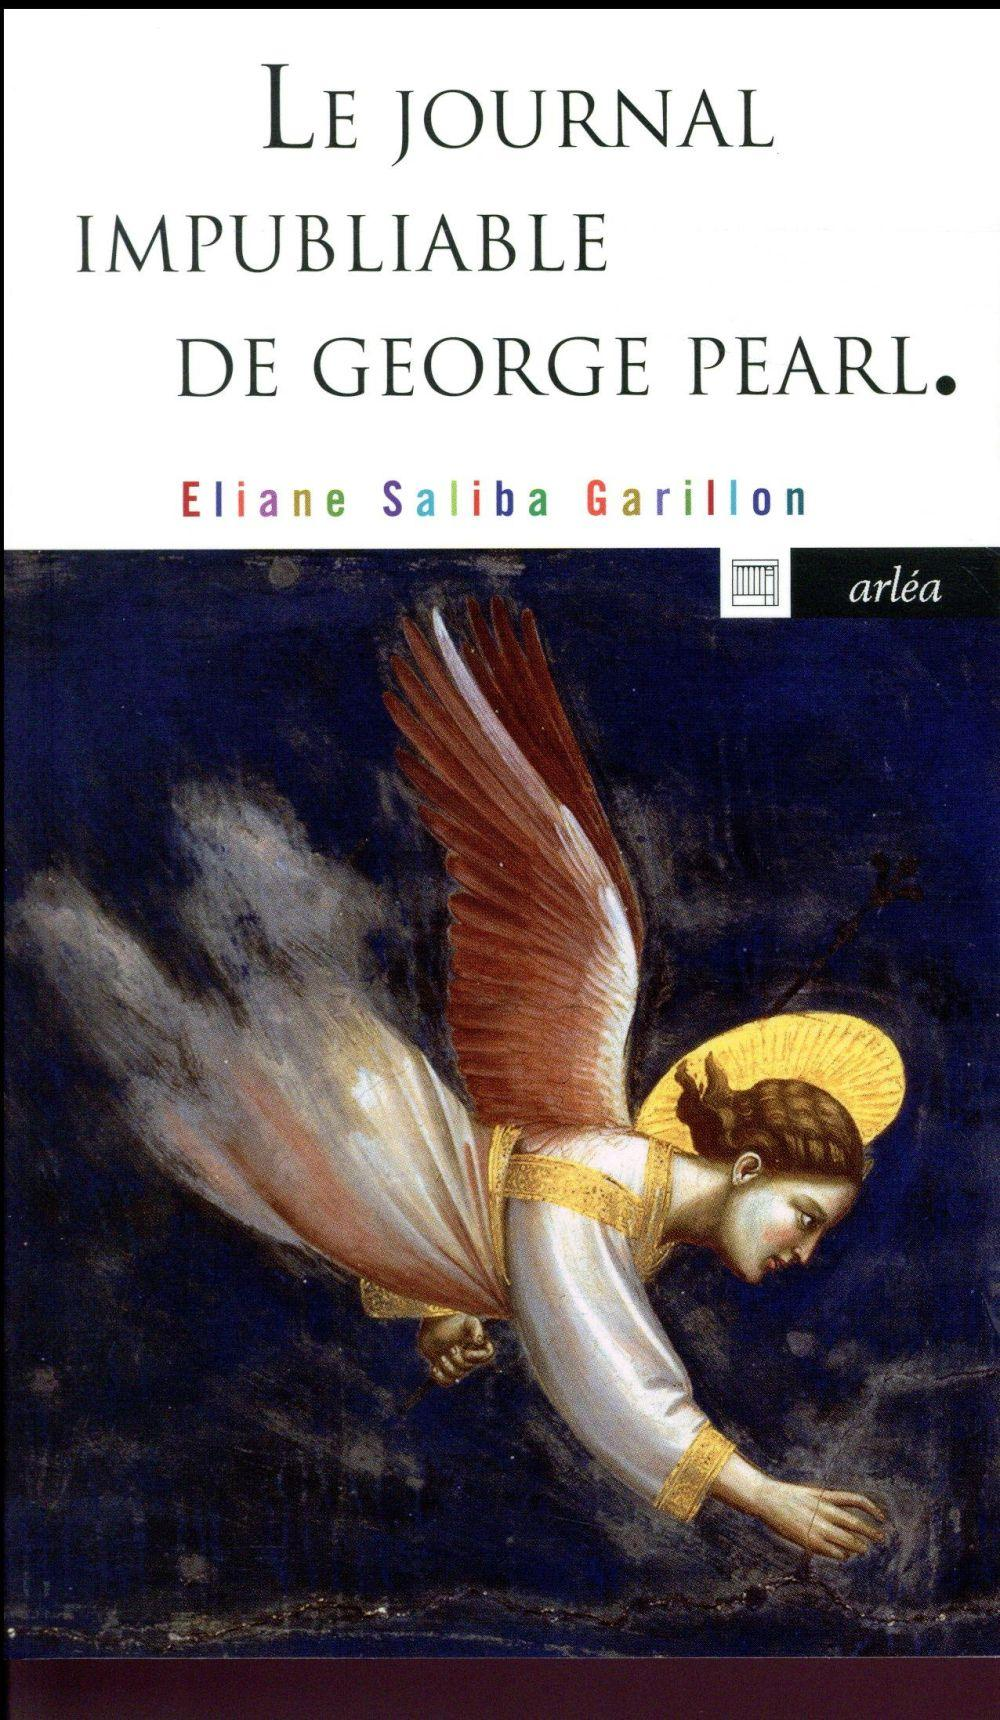 Le journal impubliable de George Pearl  - Eliane Saliba-Garillon